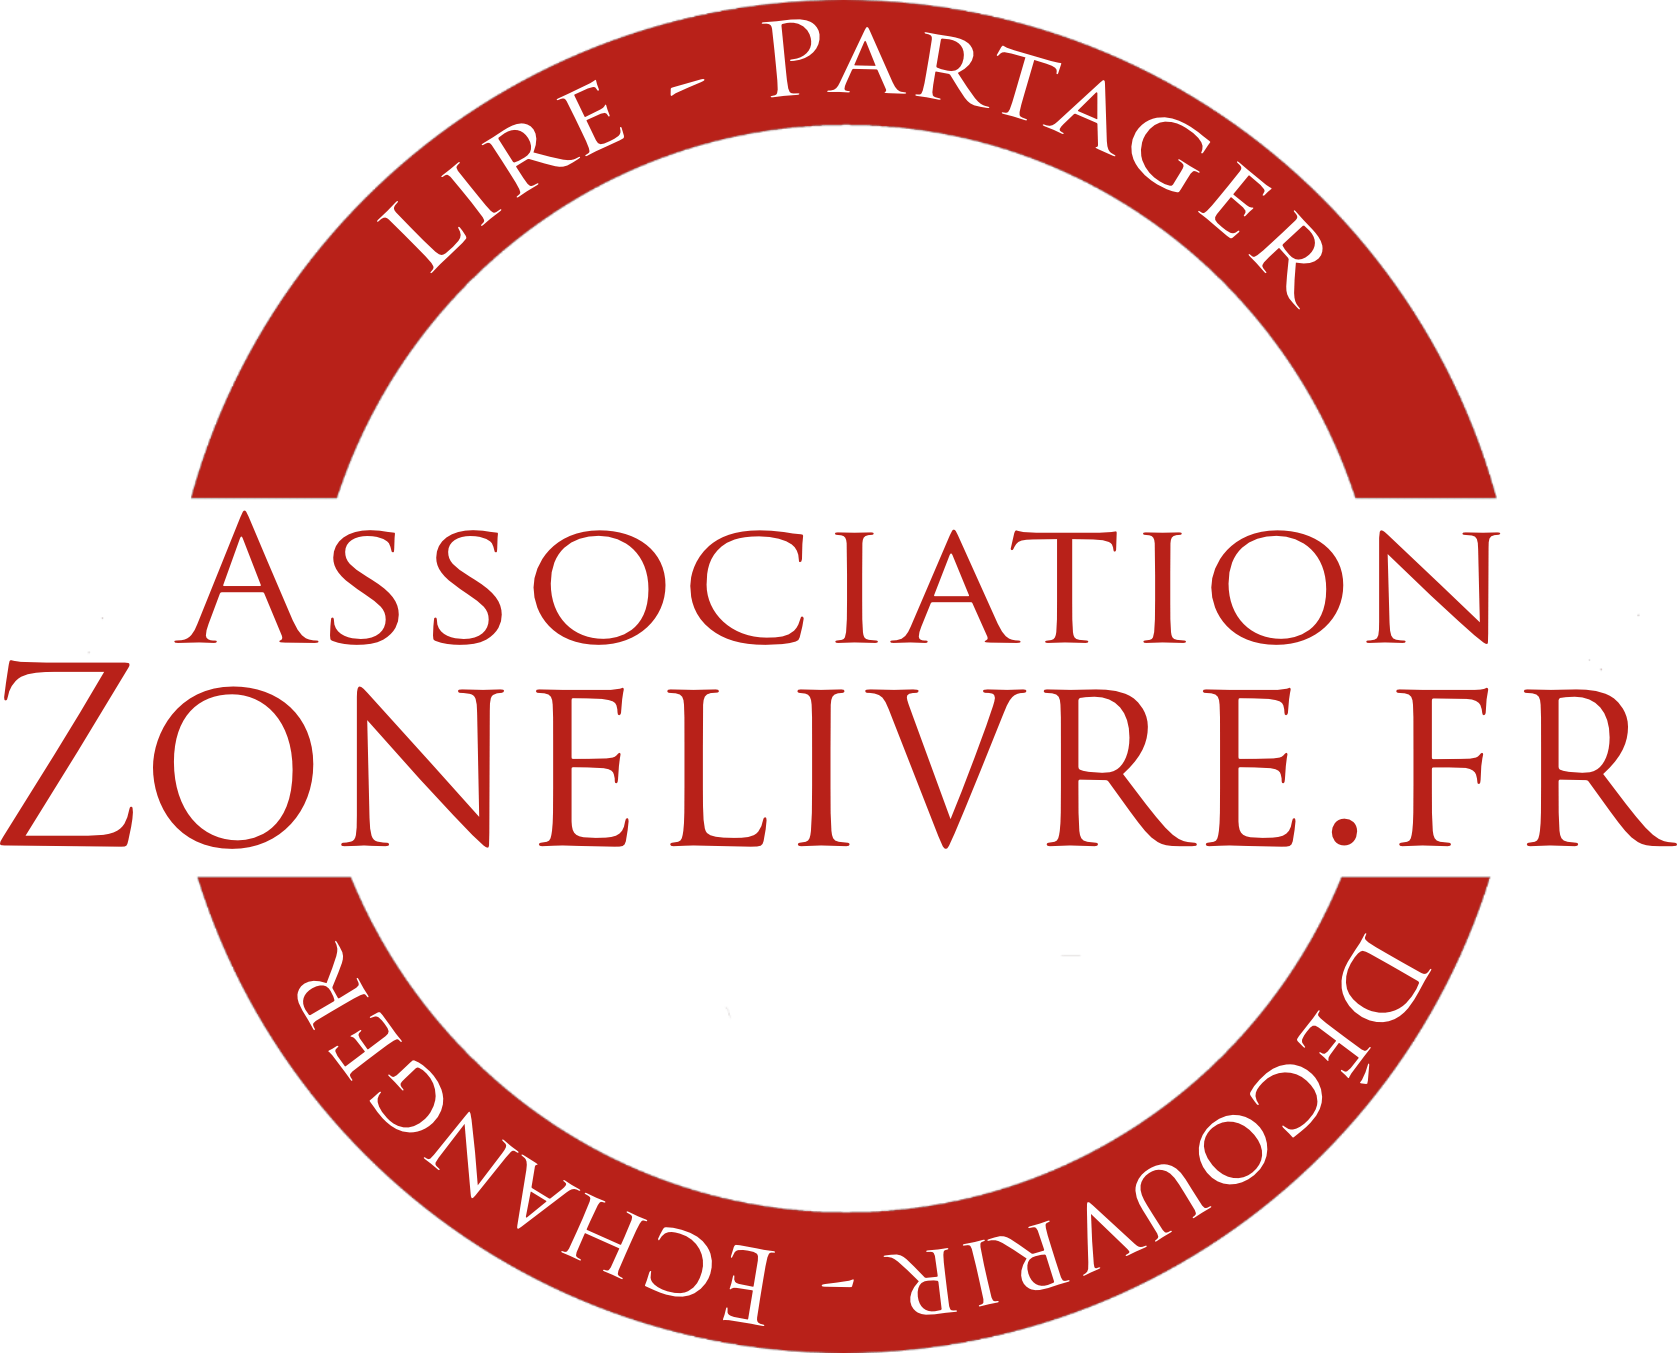 Zonelivre Association